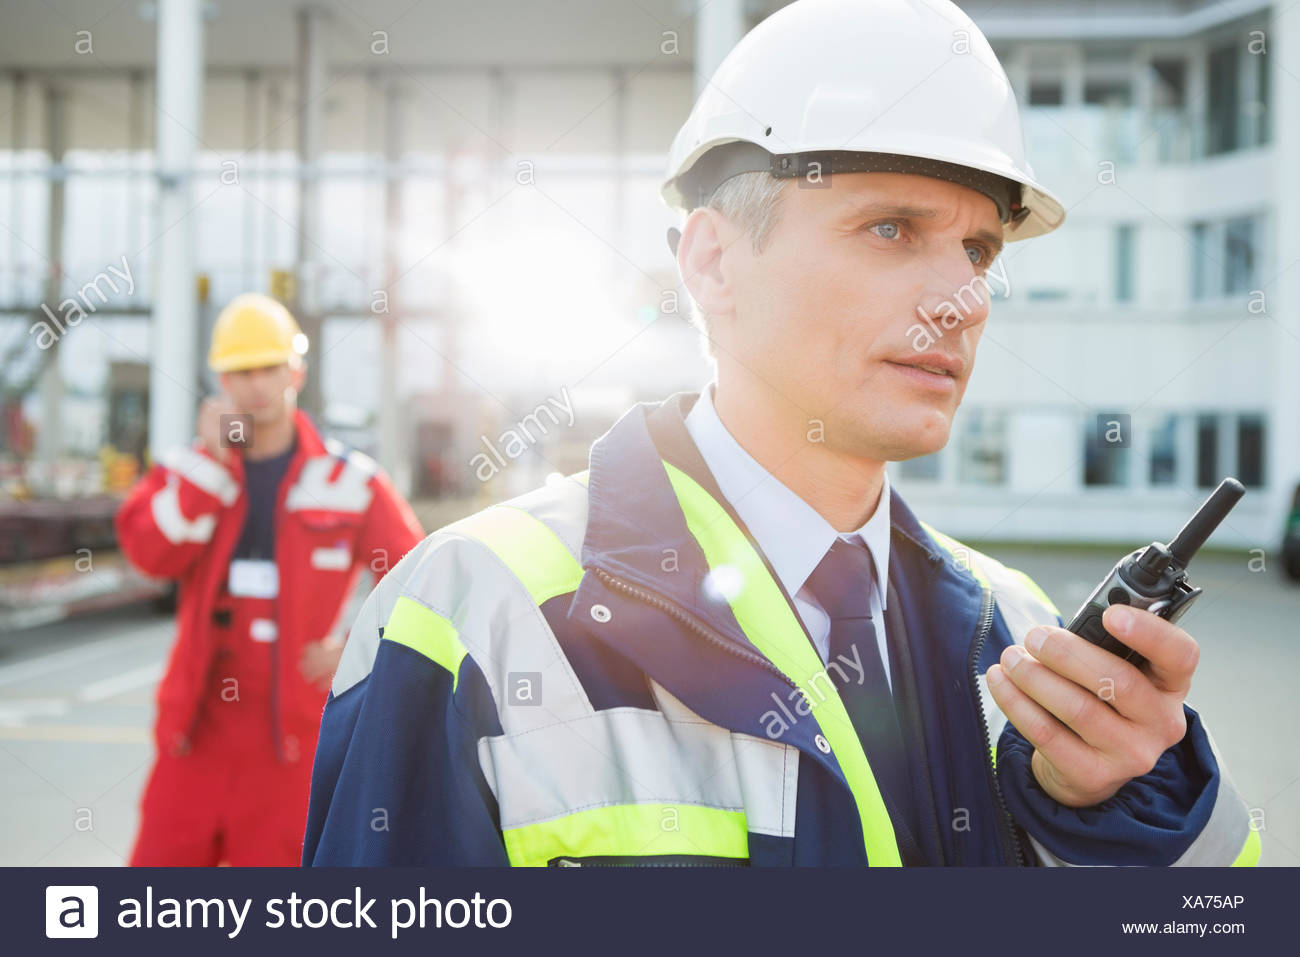 Male worker using walkie-talkie with colleague in background at shipping yard - Stock Image